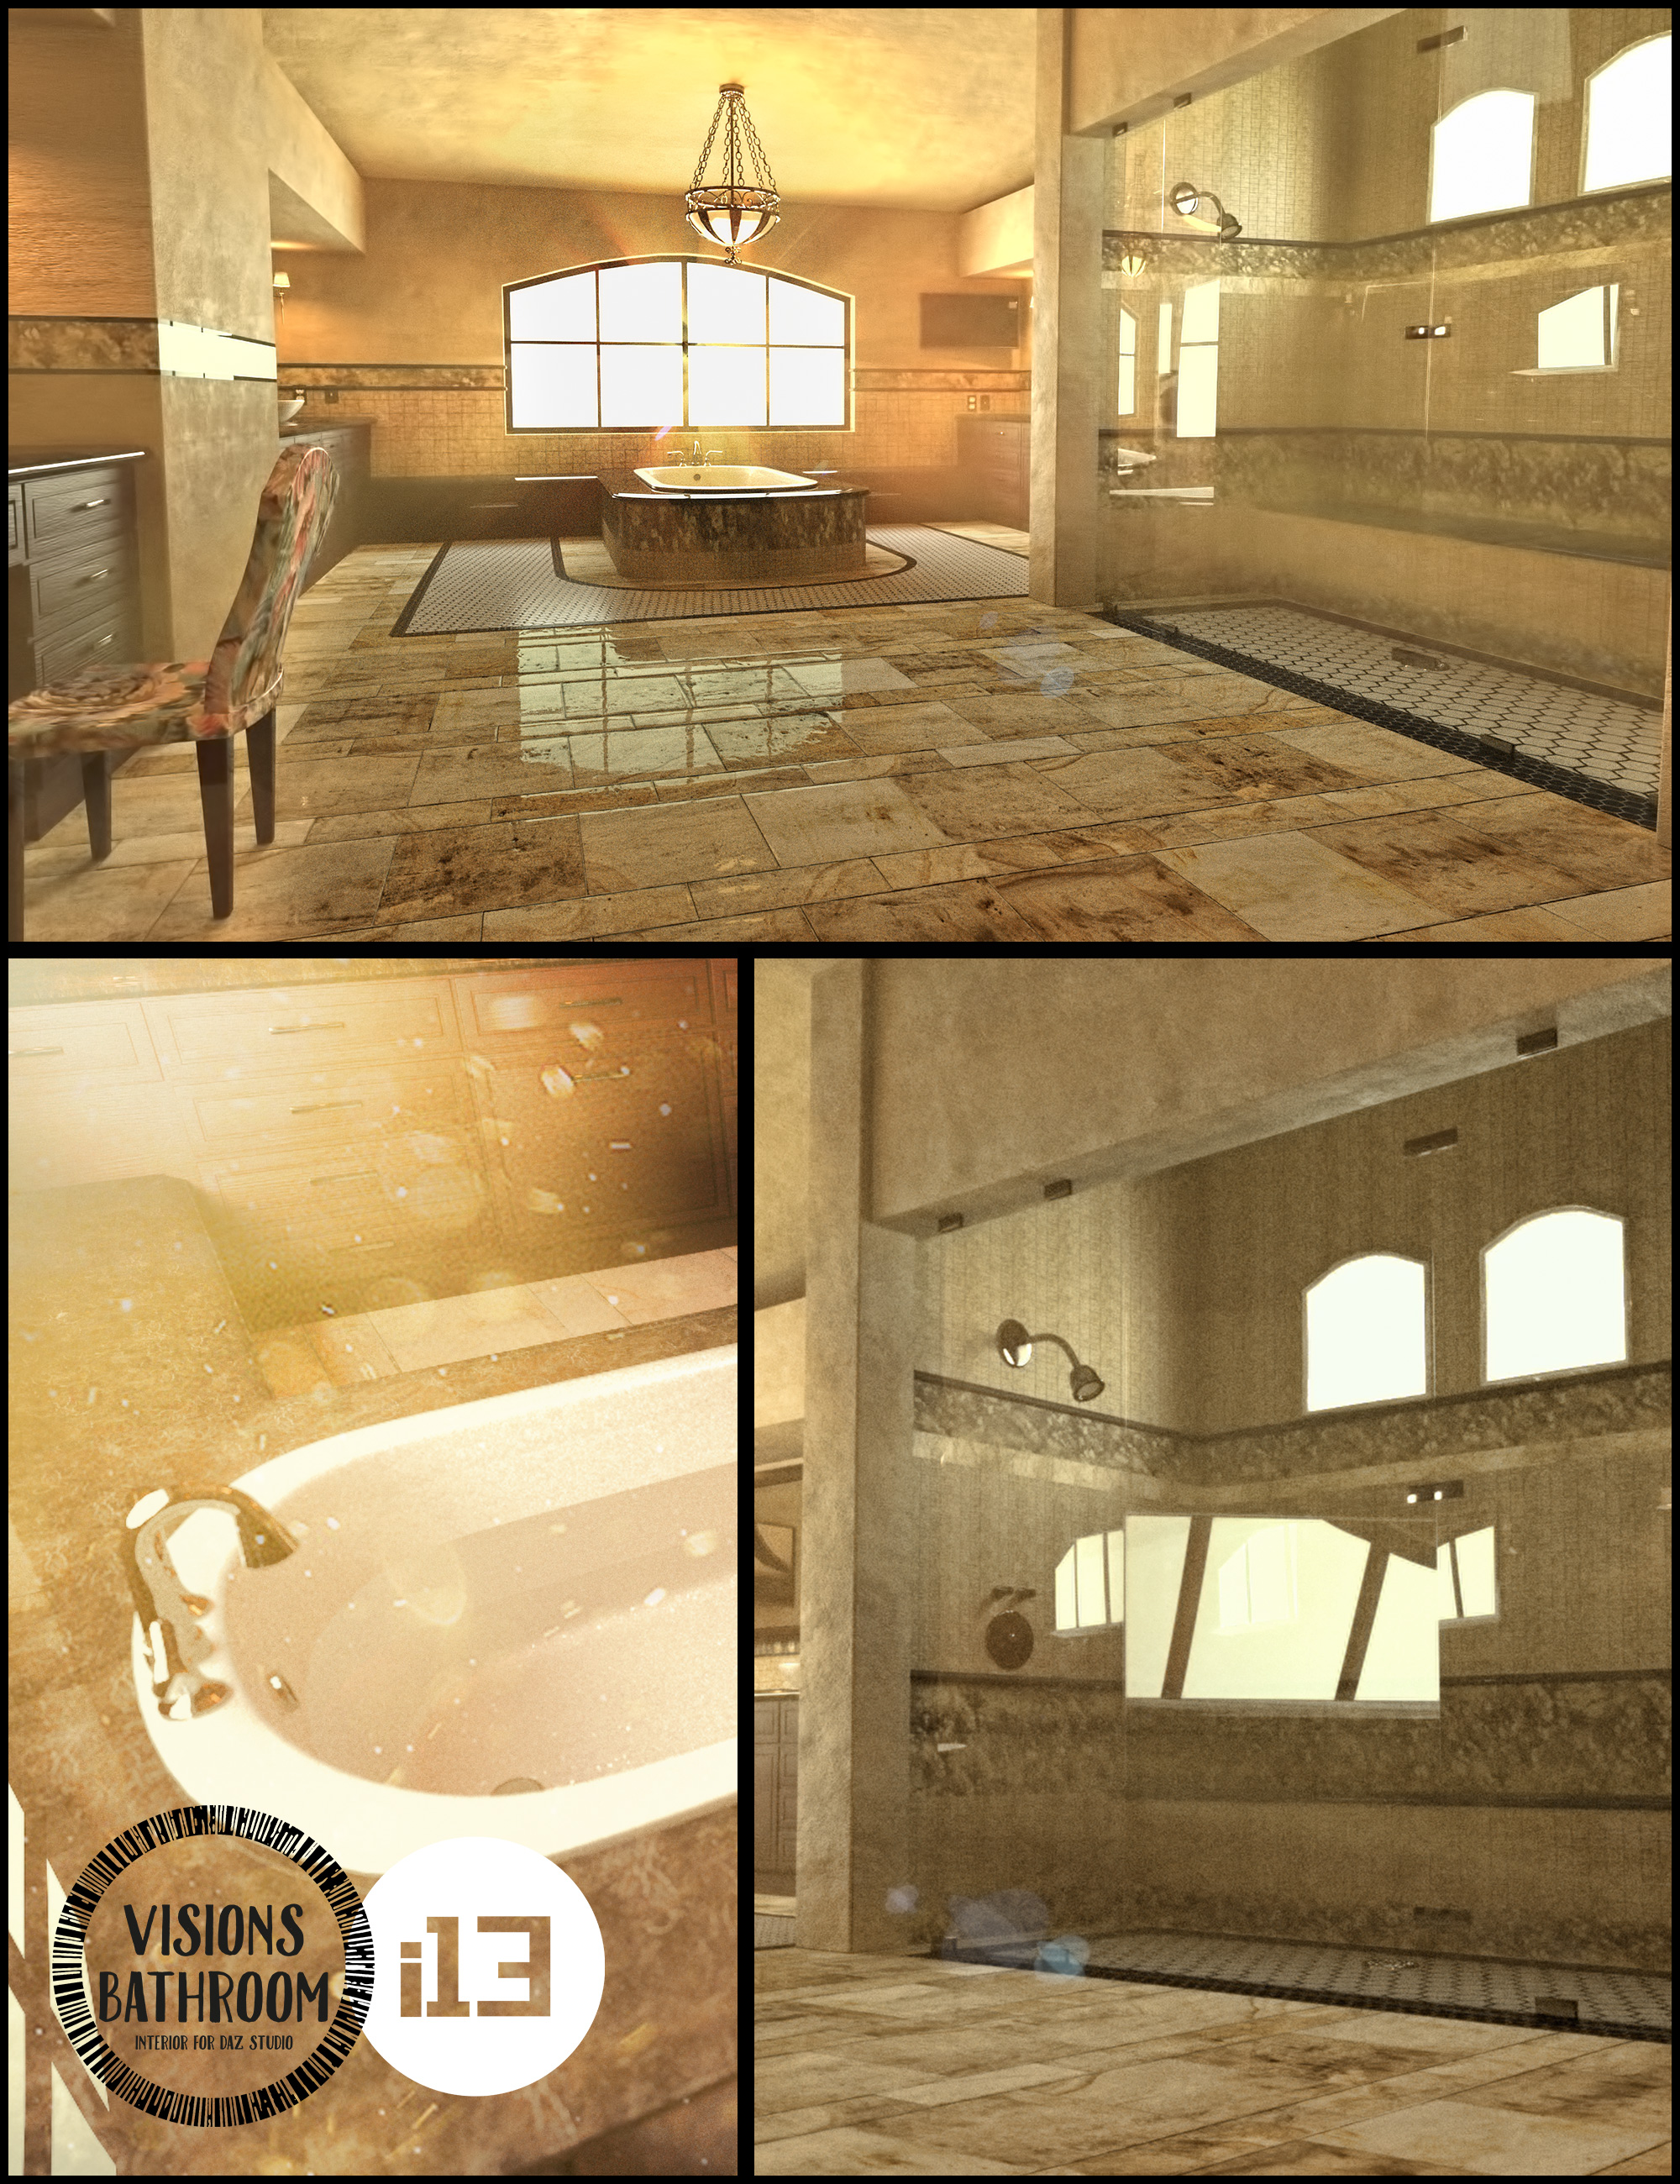 i13 Visions Bathroom Interior by: ironman13, 3D Models by Daz 3D